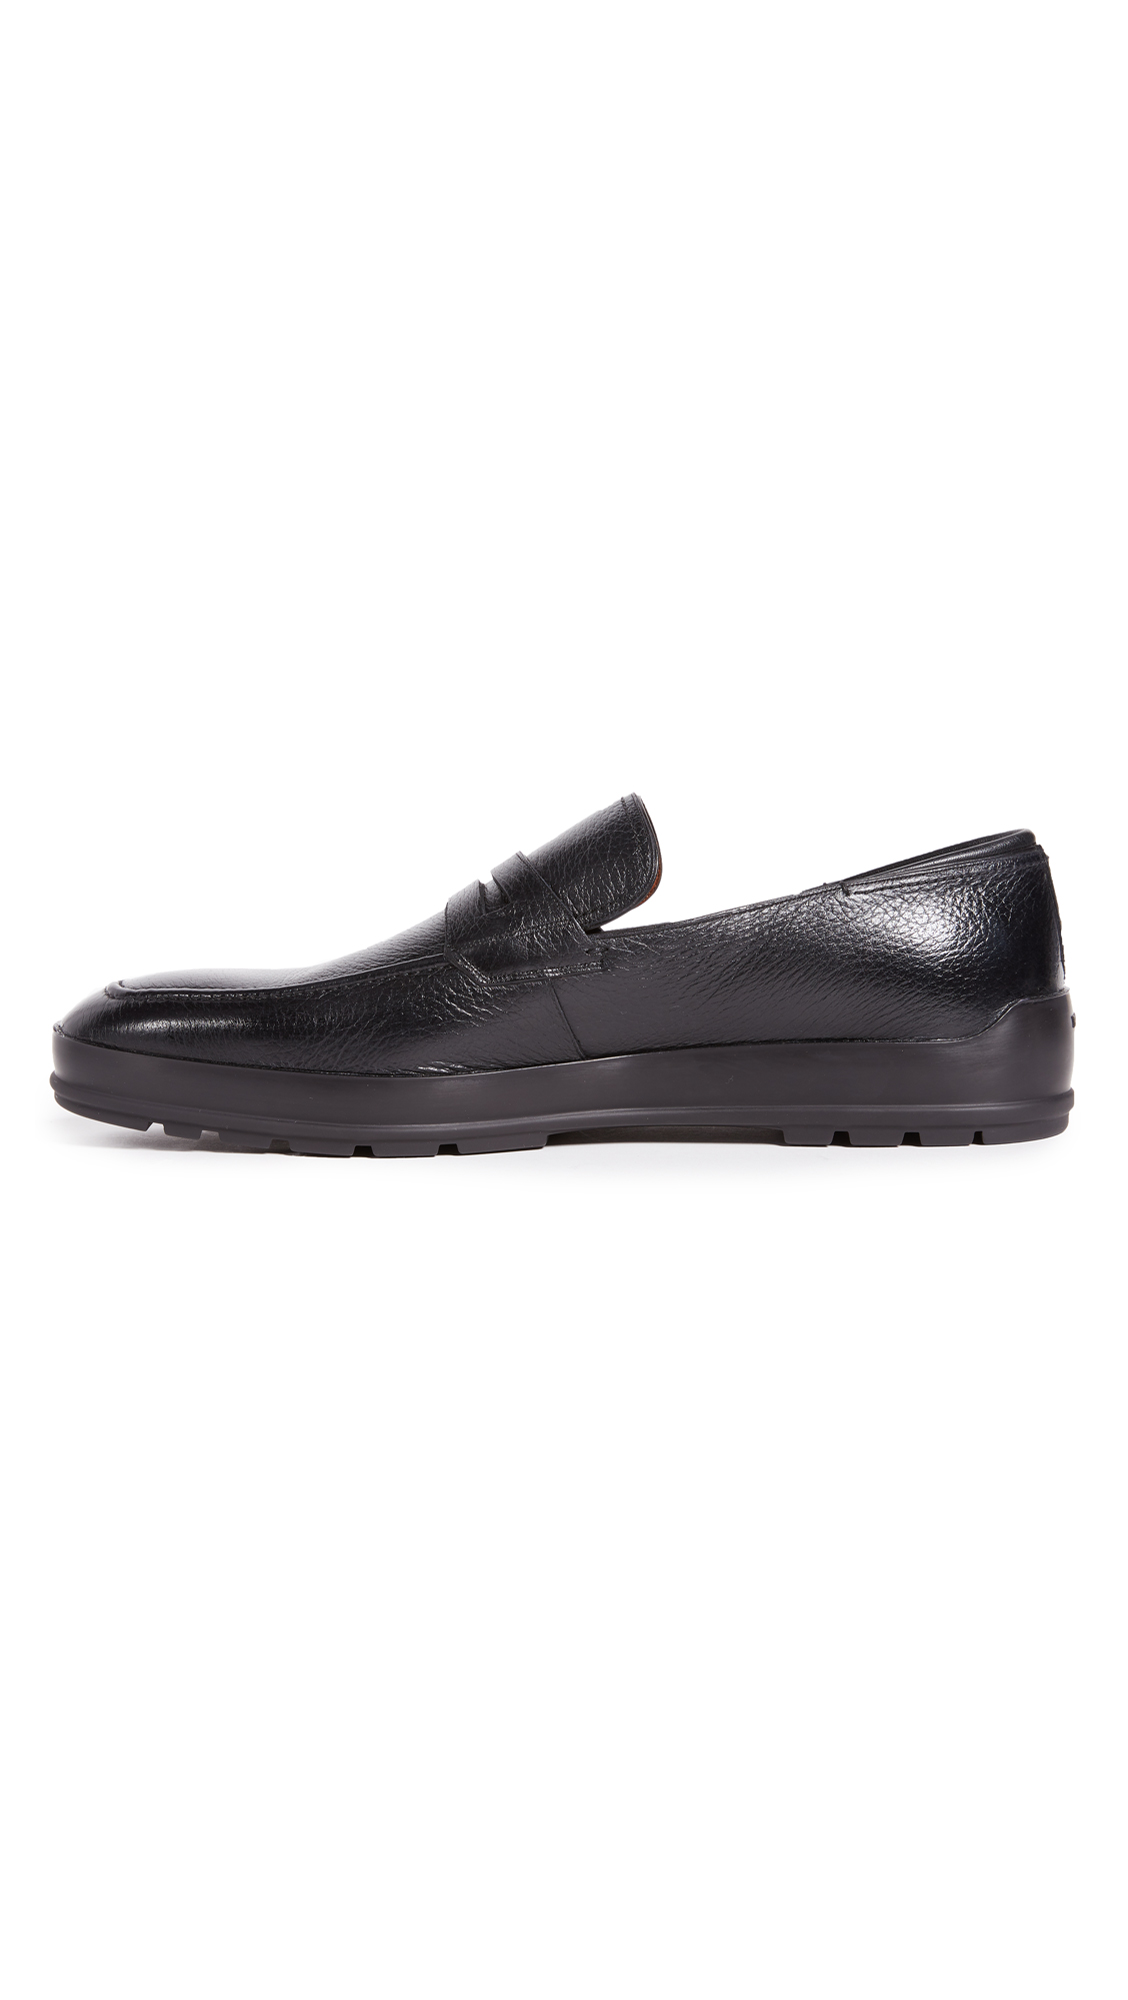 5075ed98017 Bally Relon Loafers